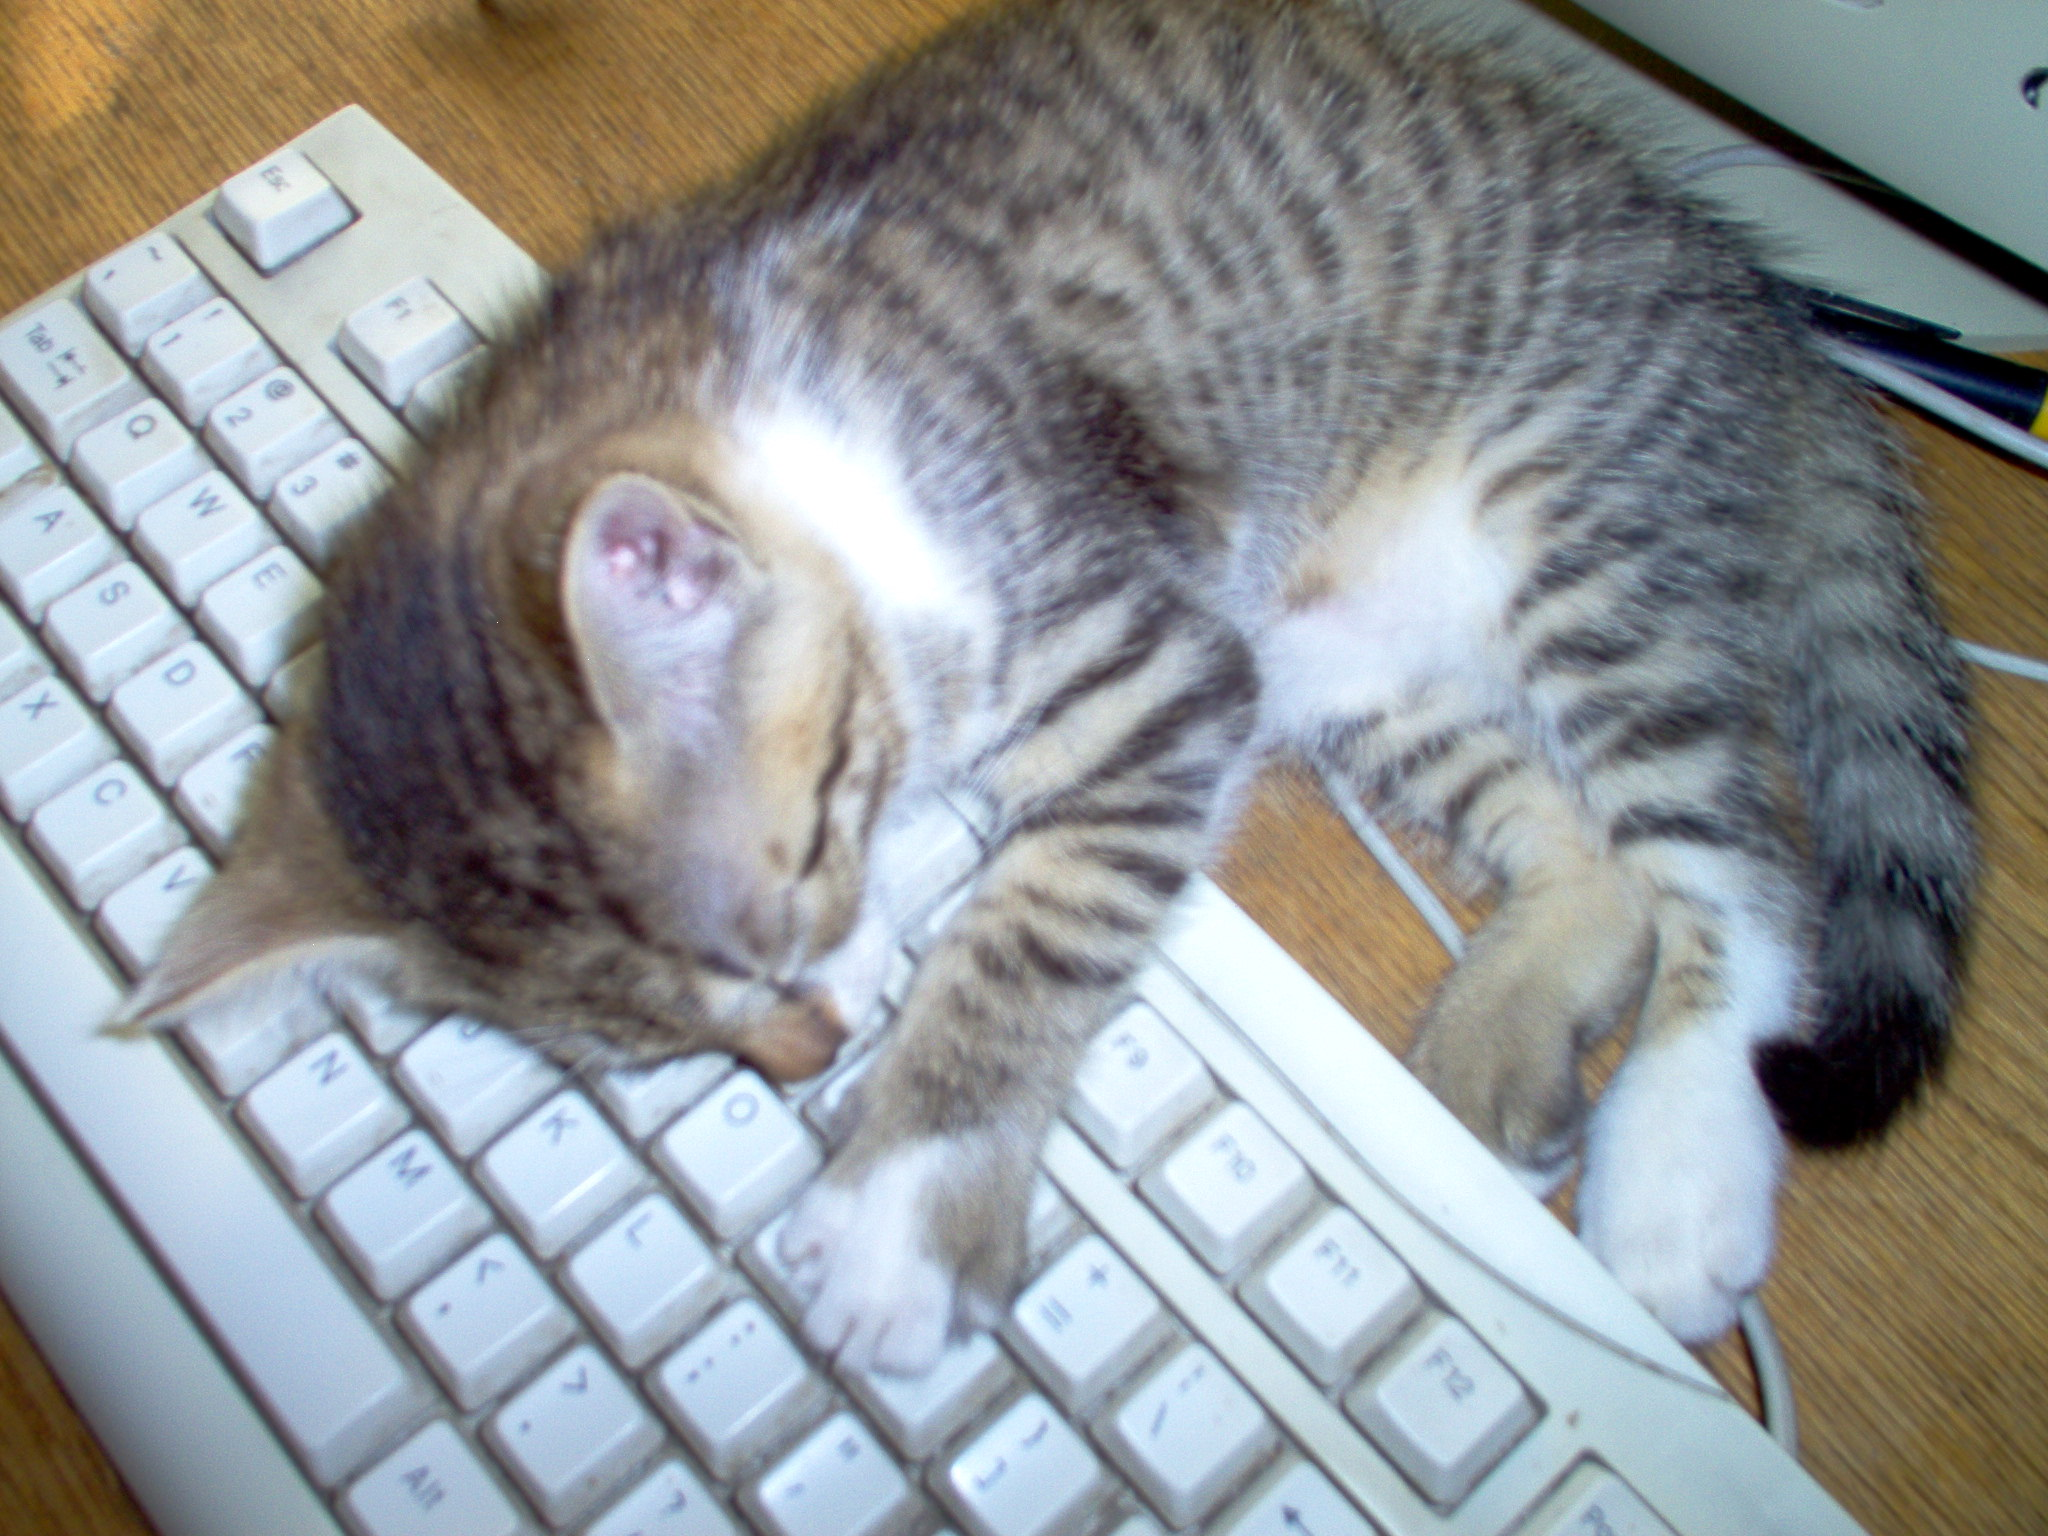 Kitten sleeping on keyboard